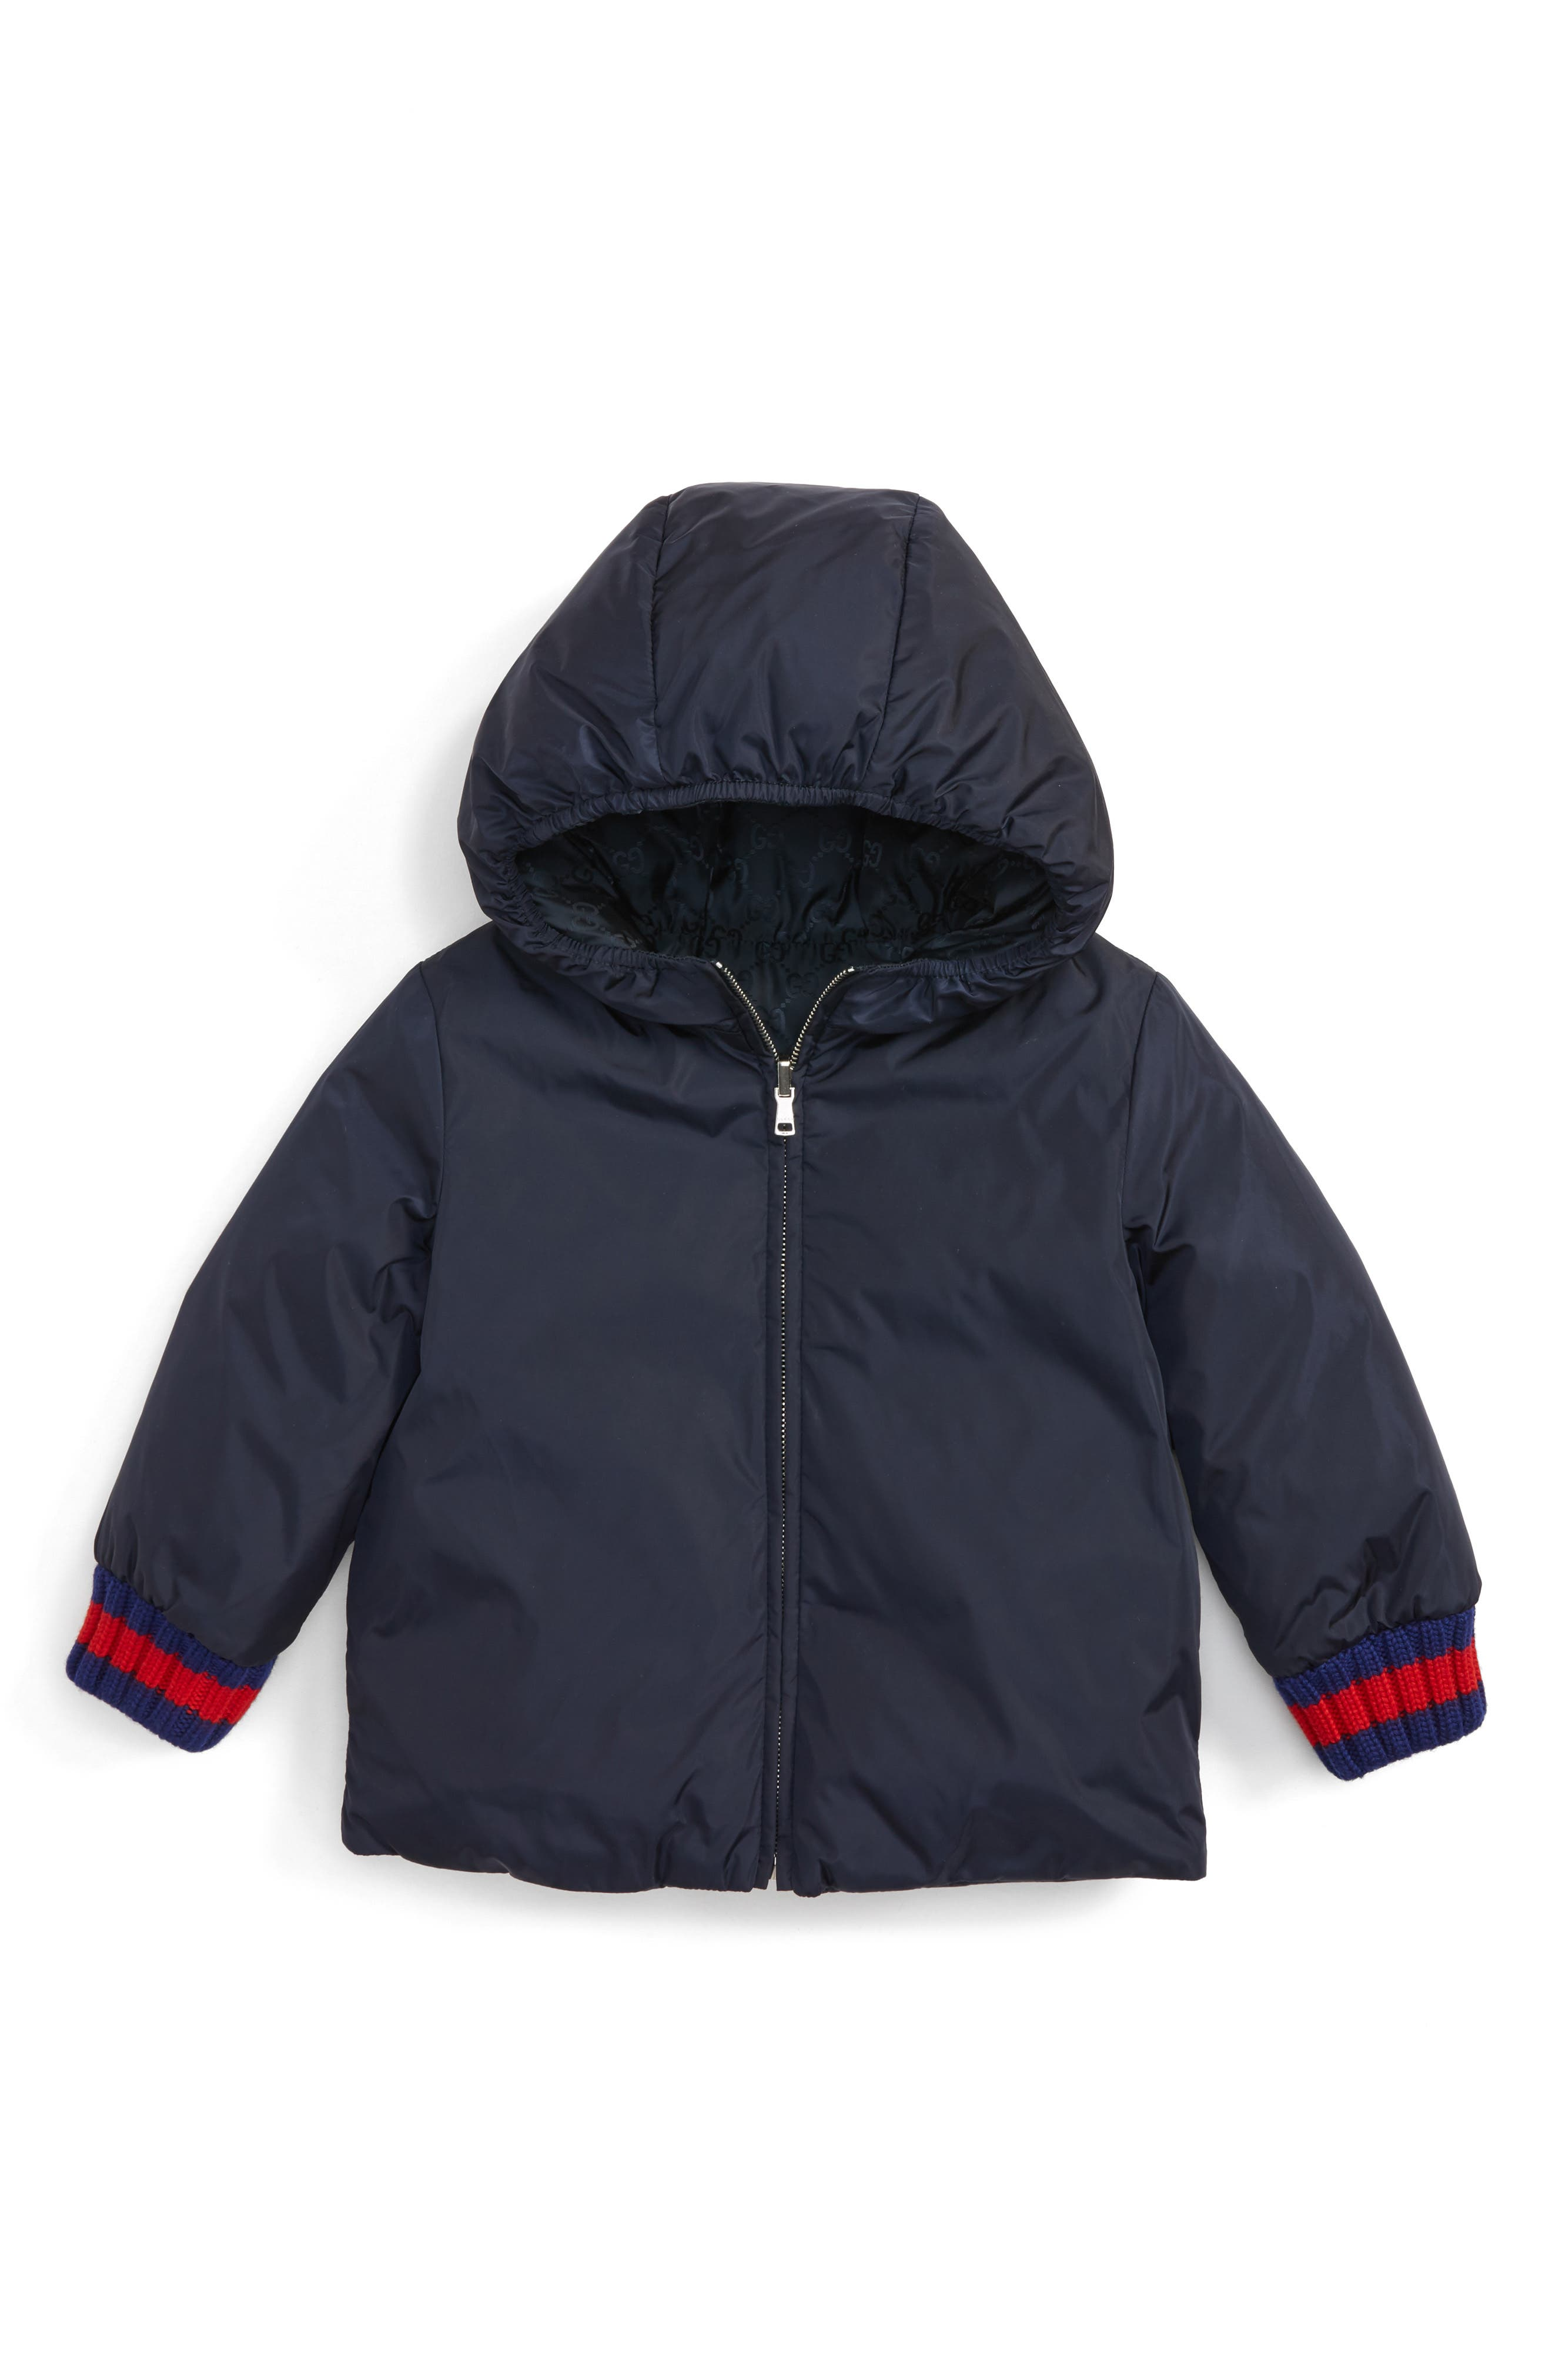 Gucci Reversible GG Jacquard Water-Resistant Down Jacket (Baby)